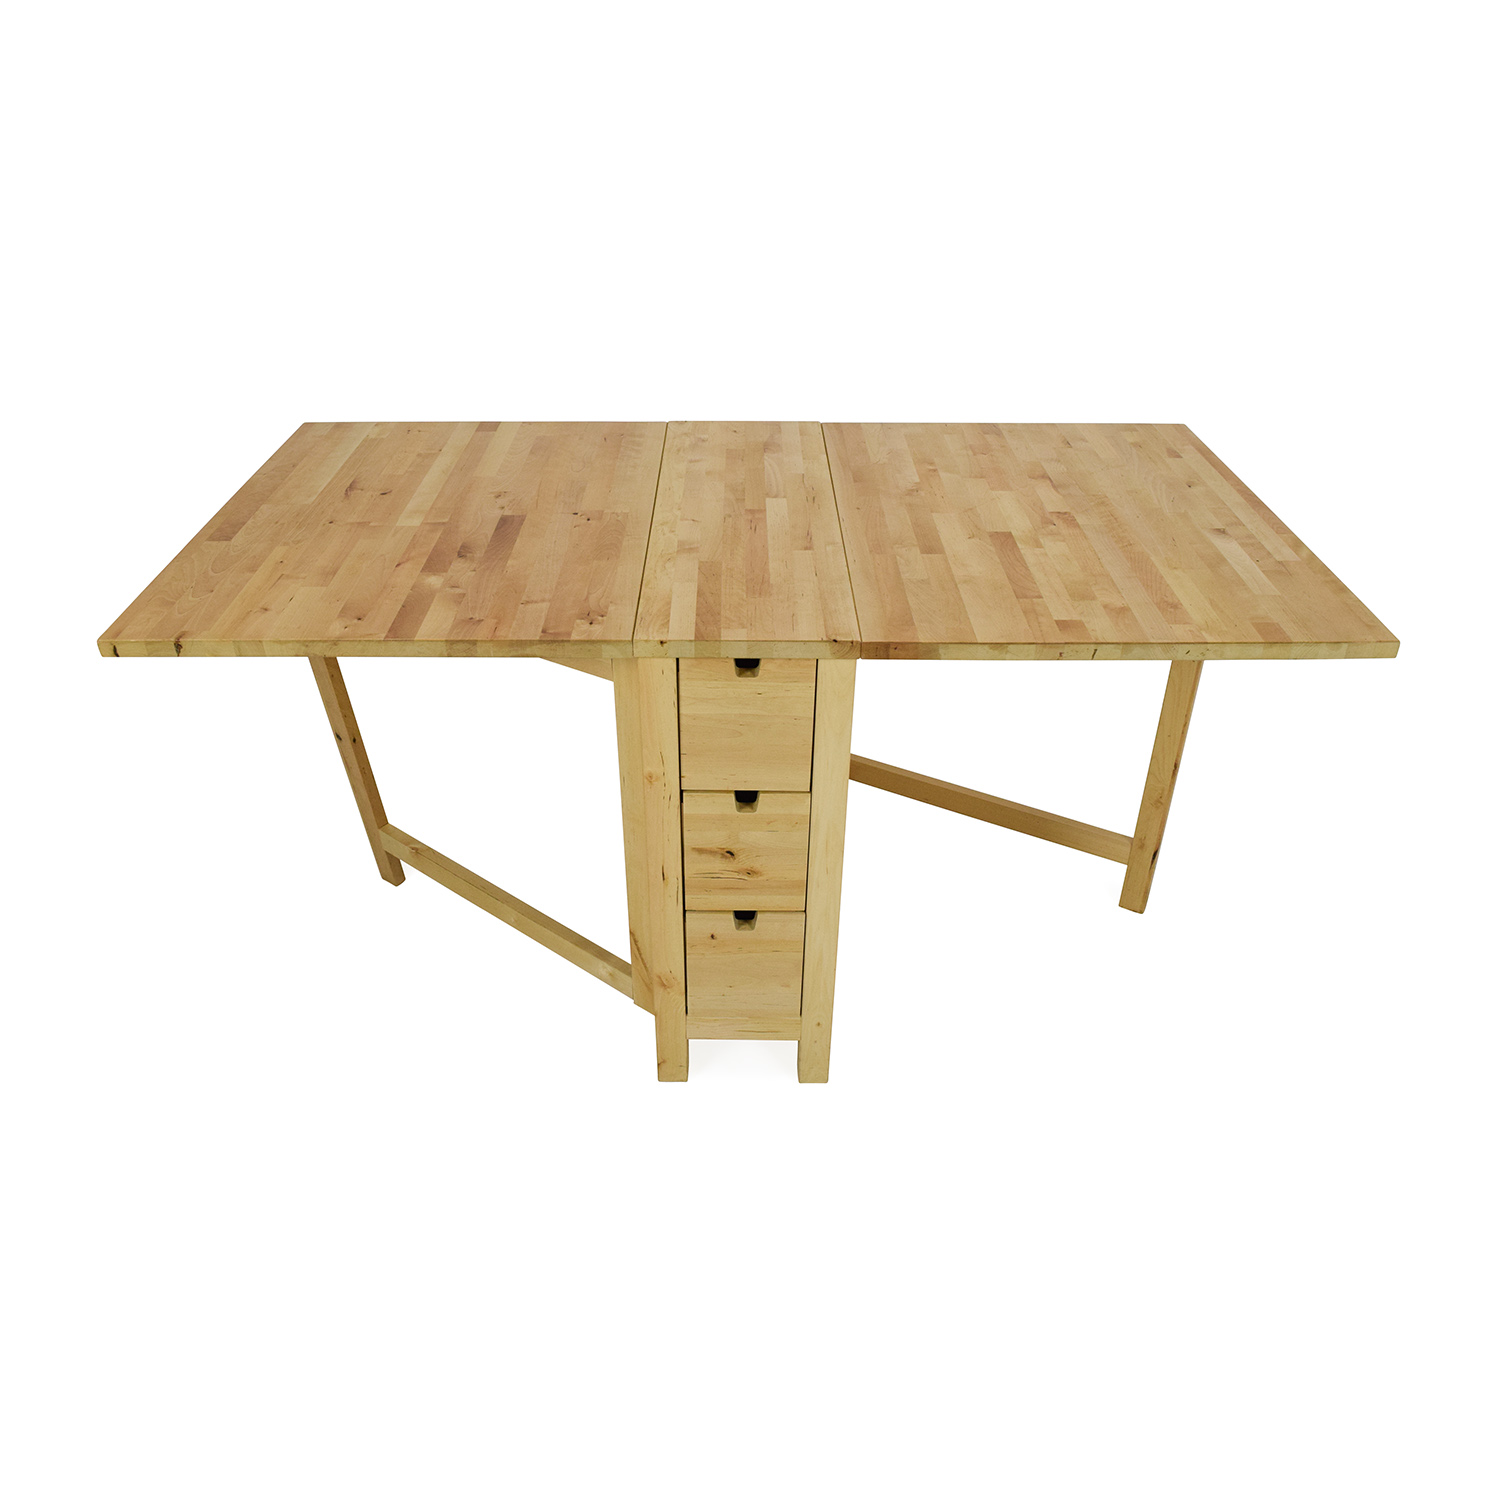 Ikea Kitchen Table: IKEA IKEA Foldable Kitchen Table And Desk / Tables